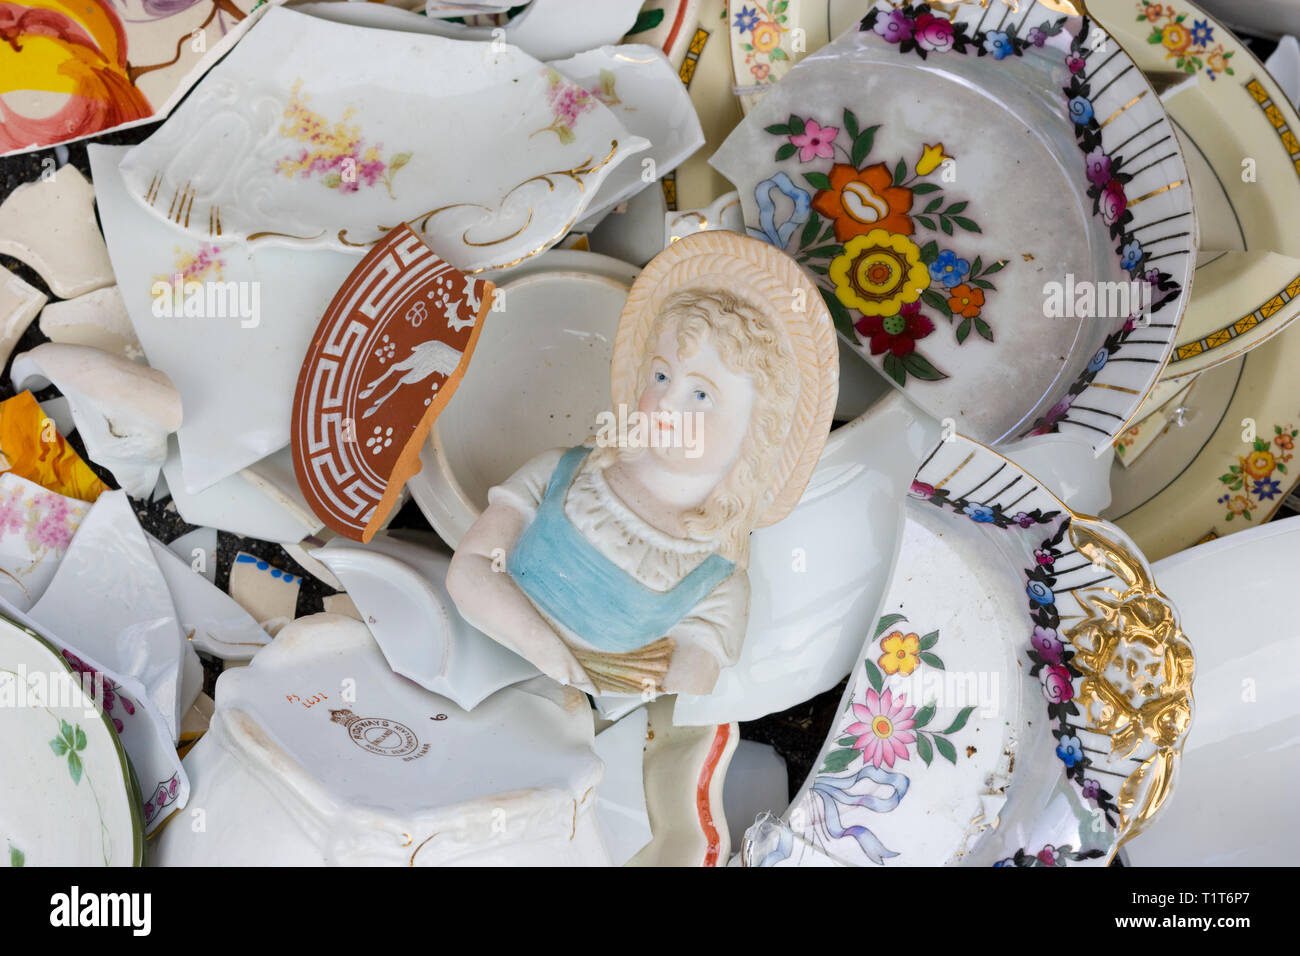 Wreckage of housewares after a Severe storm Stock Photo